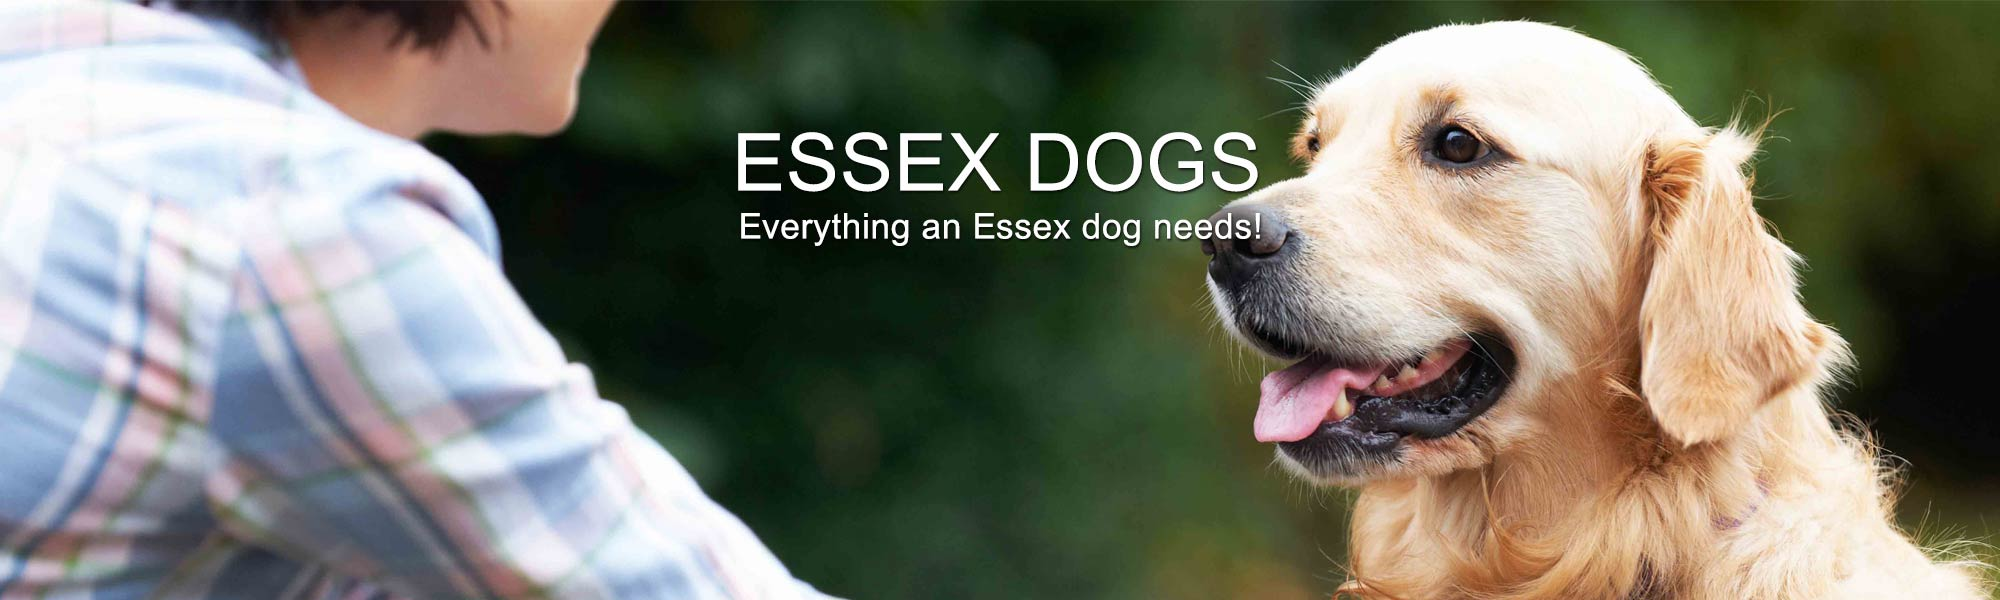 Essex Dogs Header